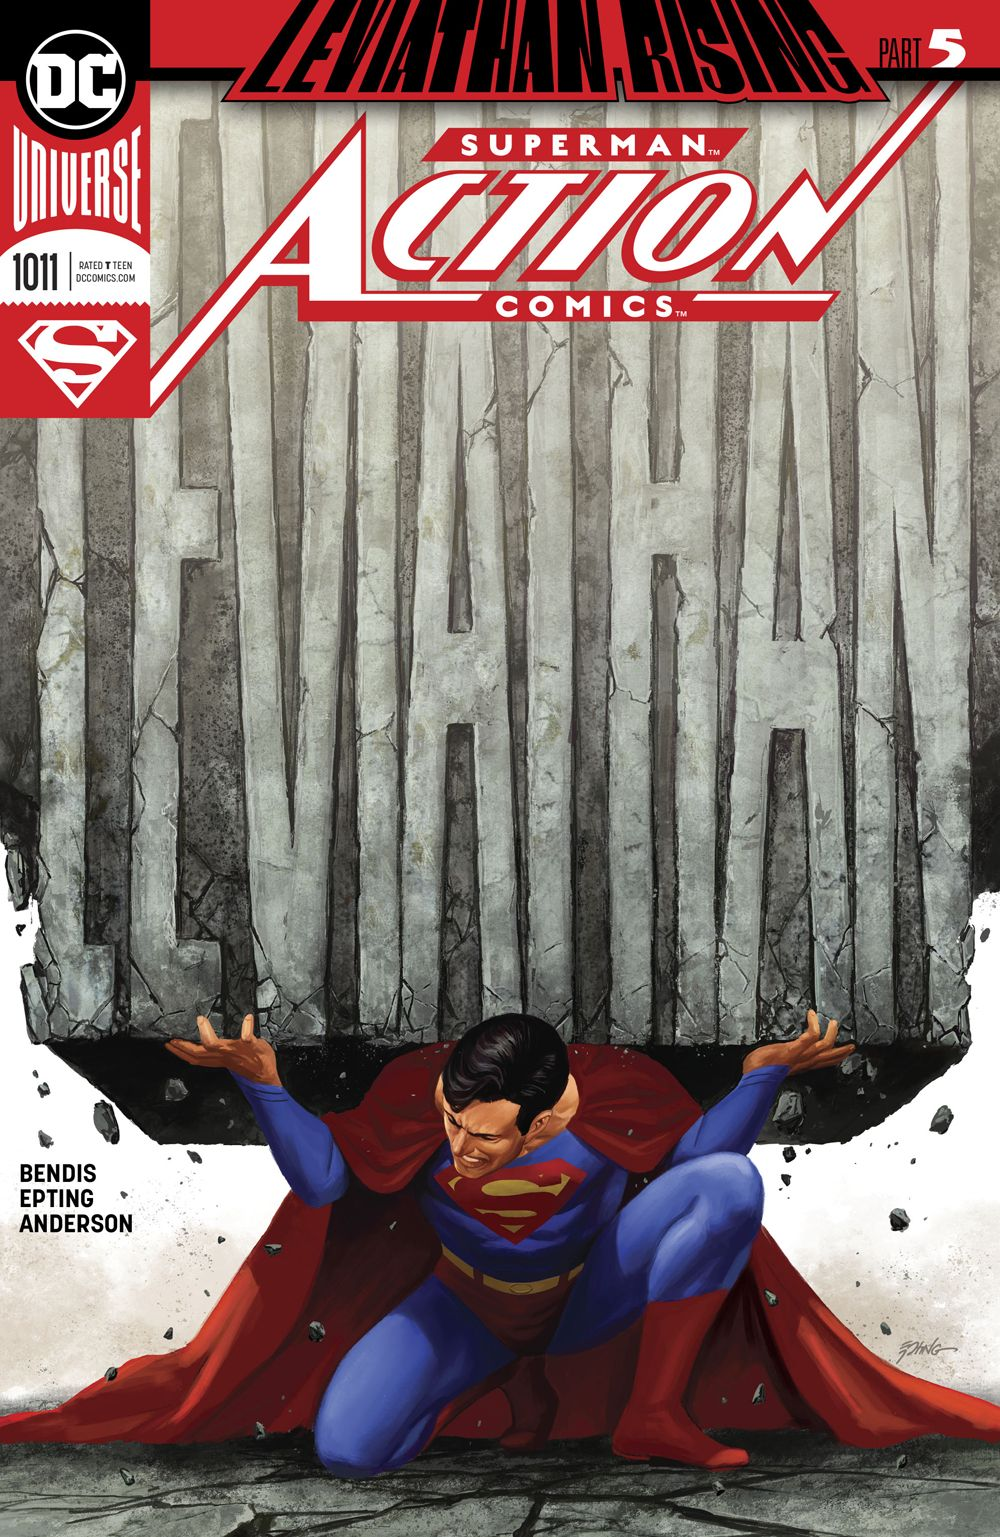 Action Comics #1011 Successfully Sets the Stage for Bendis' Event Leviathan